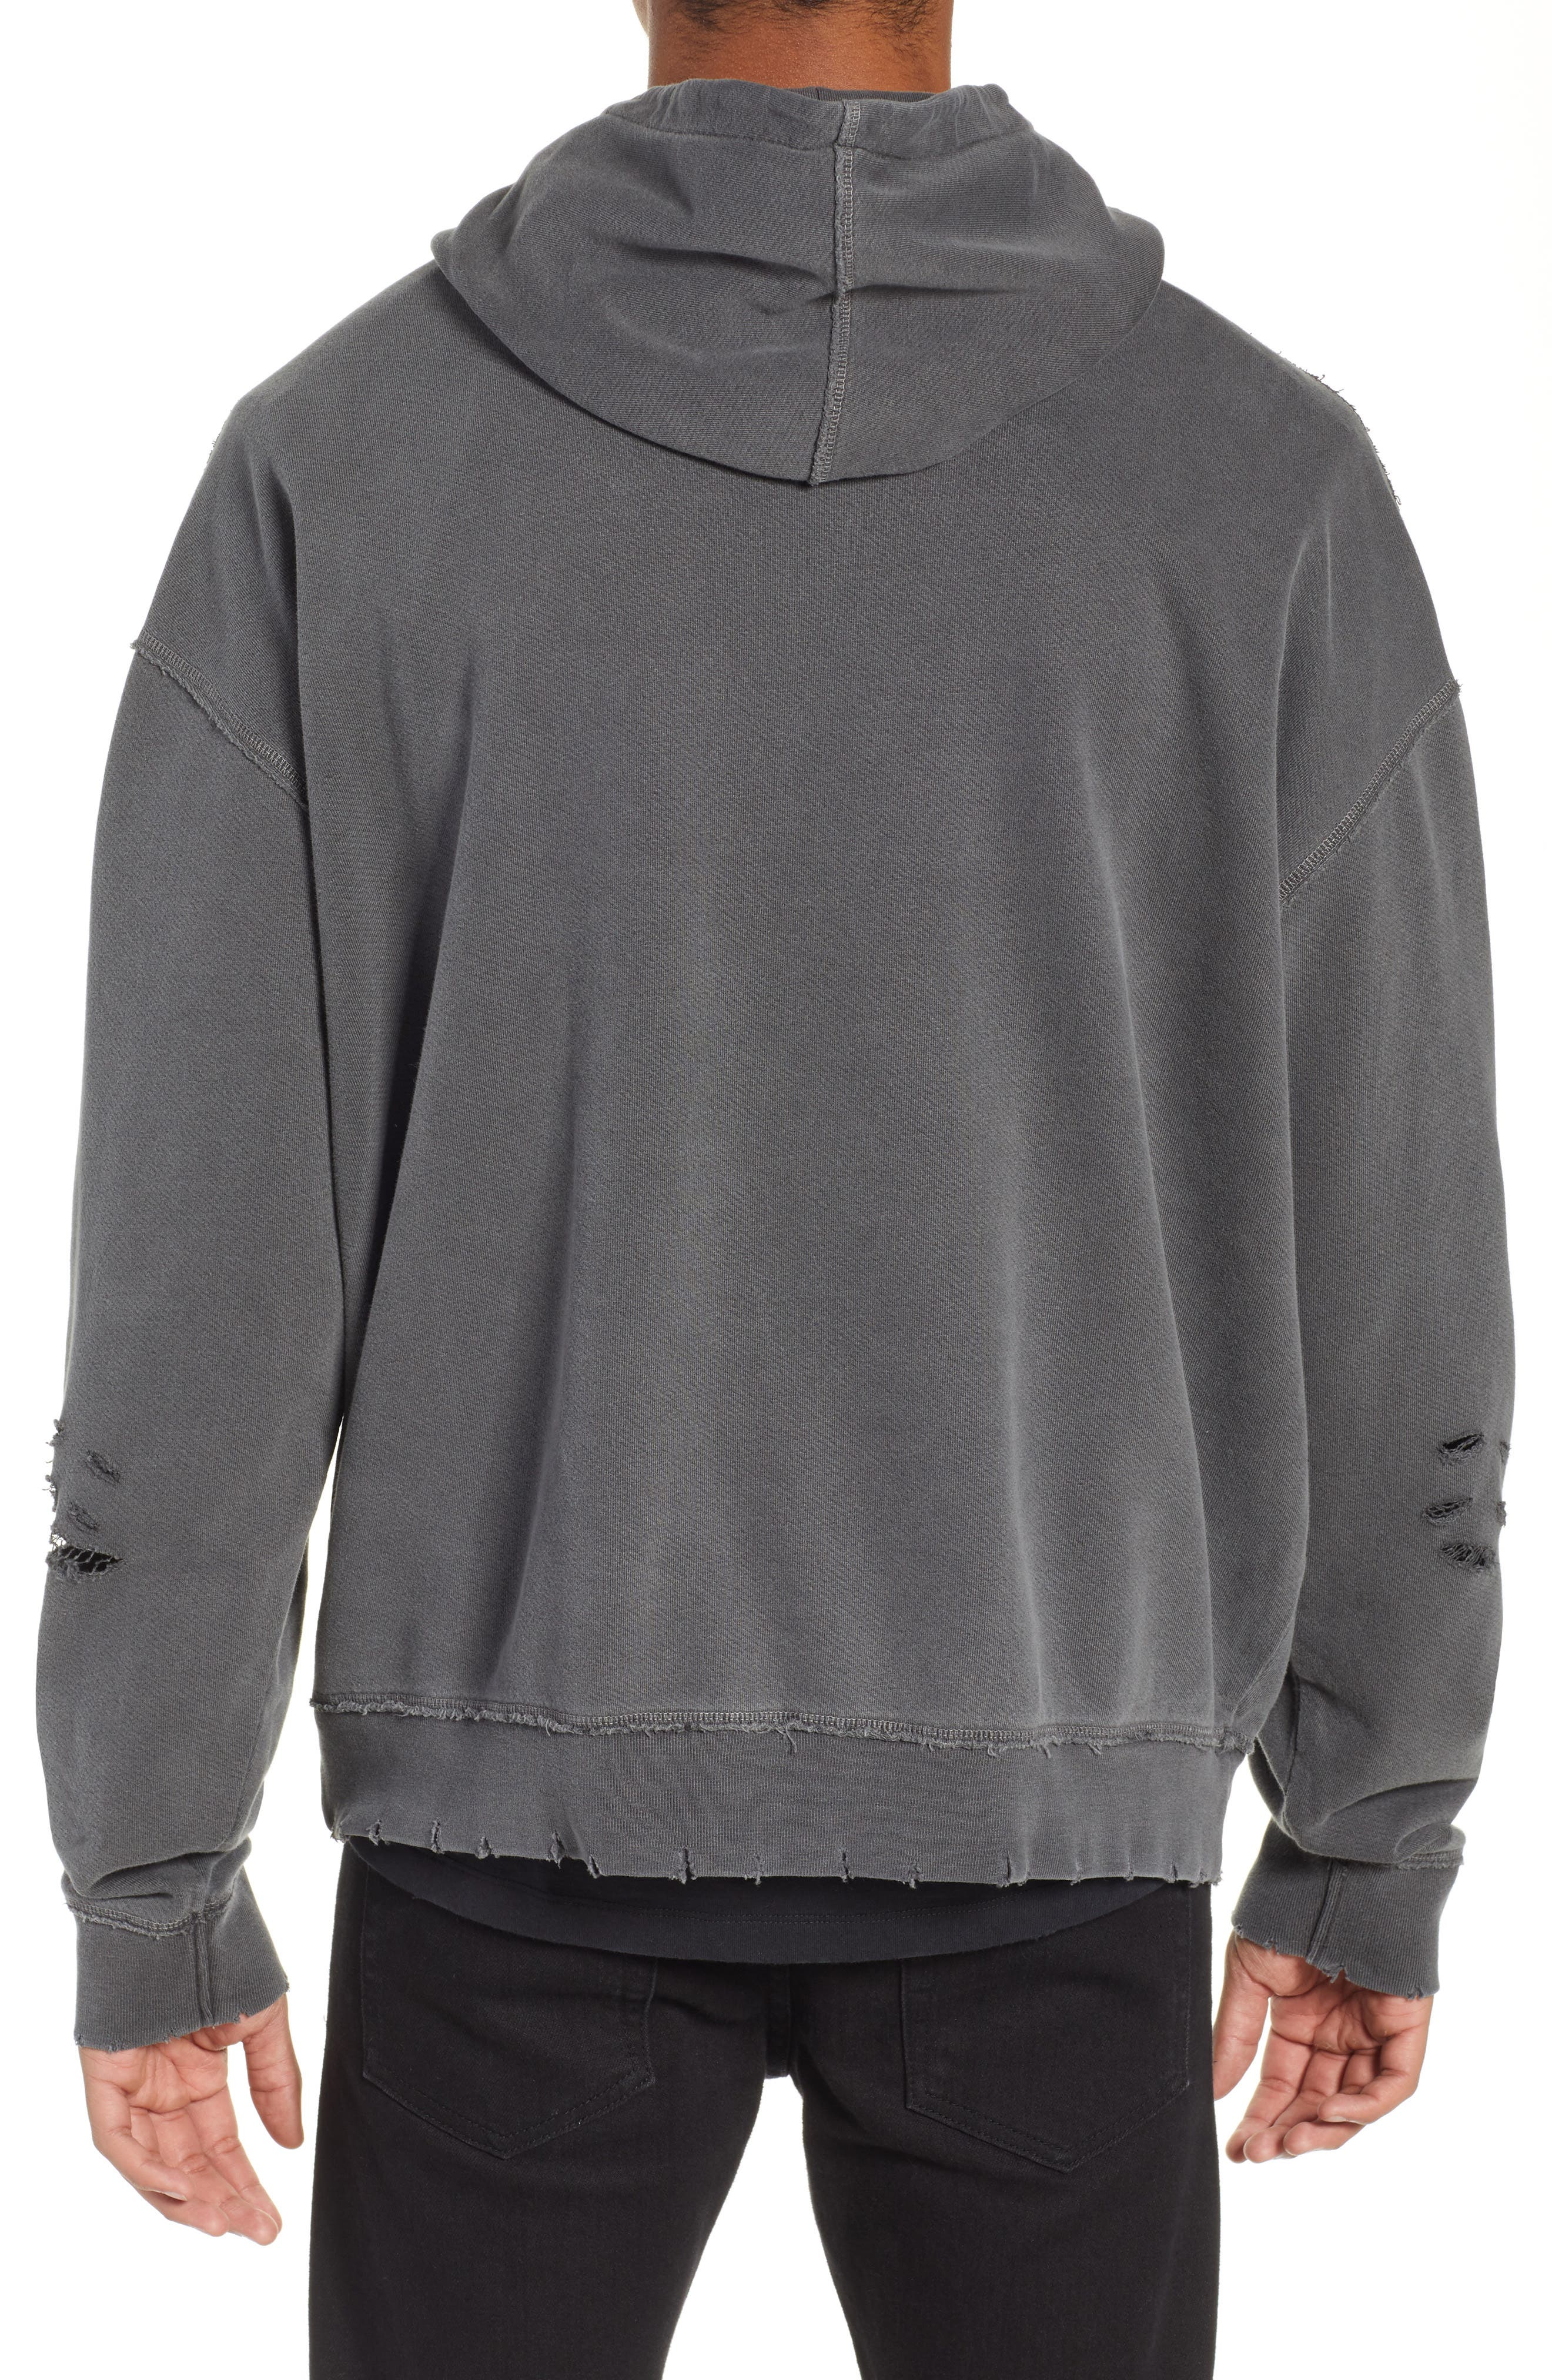 THE KOOPLES, Oversize Hoodie, Alternate thumbnail 2, color, 050